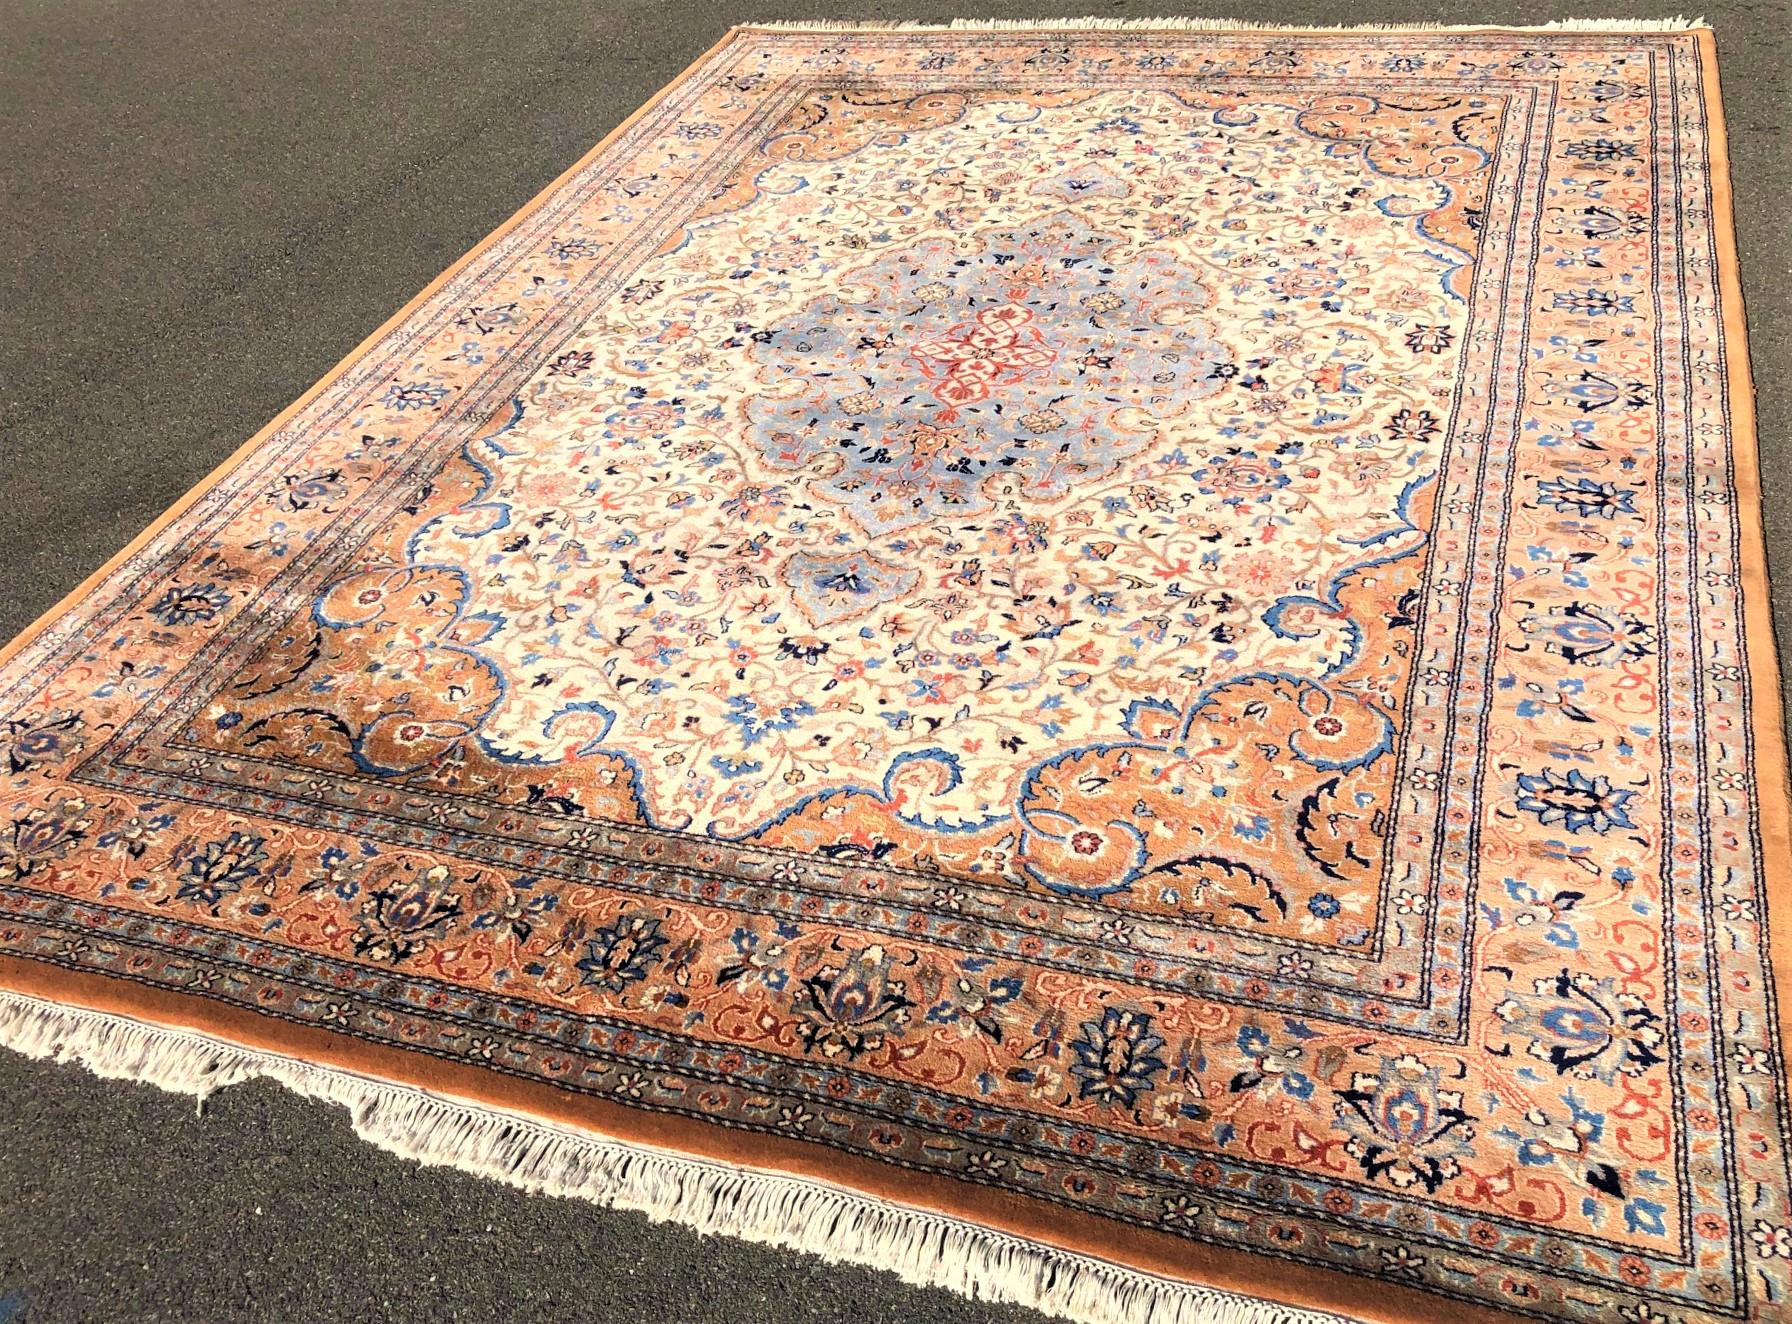 PERSIAN TABRIZ HAND KNOTTED RUG - 9.2 x 12.3